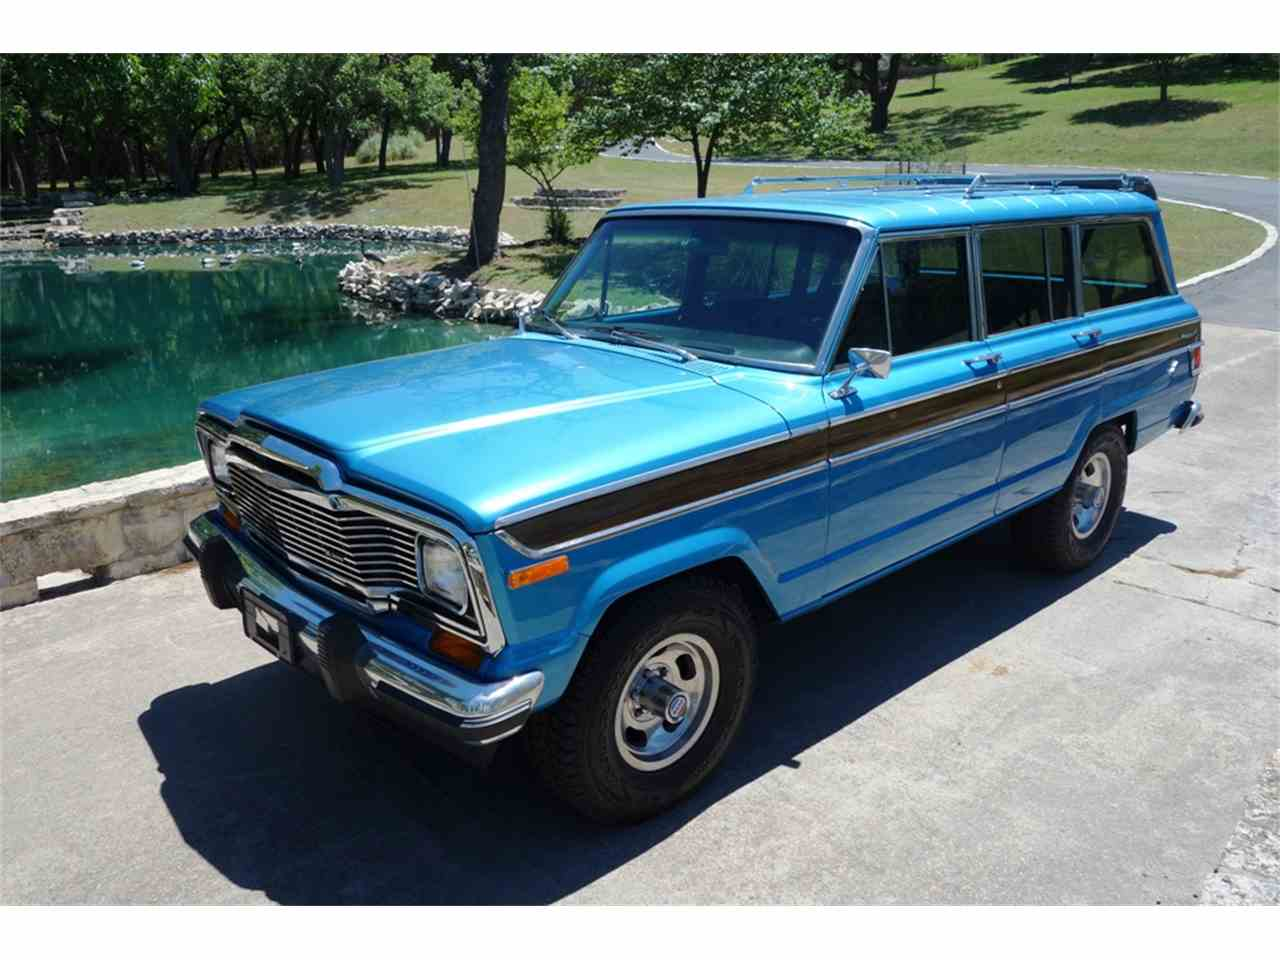 Jeep Wagoneer For Sale >> 1978 Jeep Wagonmaster Wagoneer for Sale | ClassicCars.com | CC-1001391